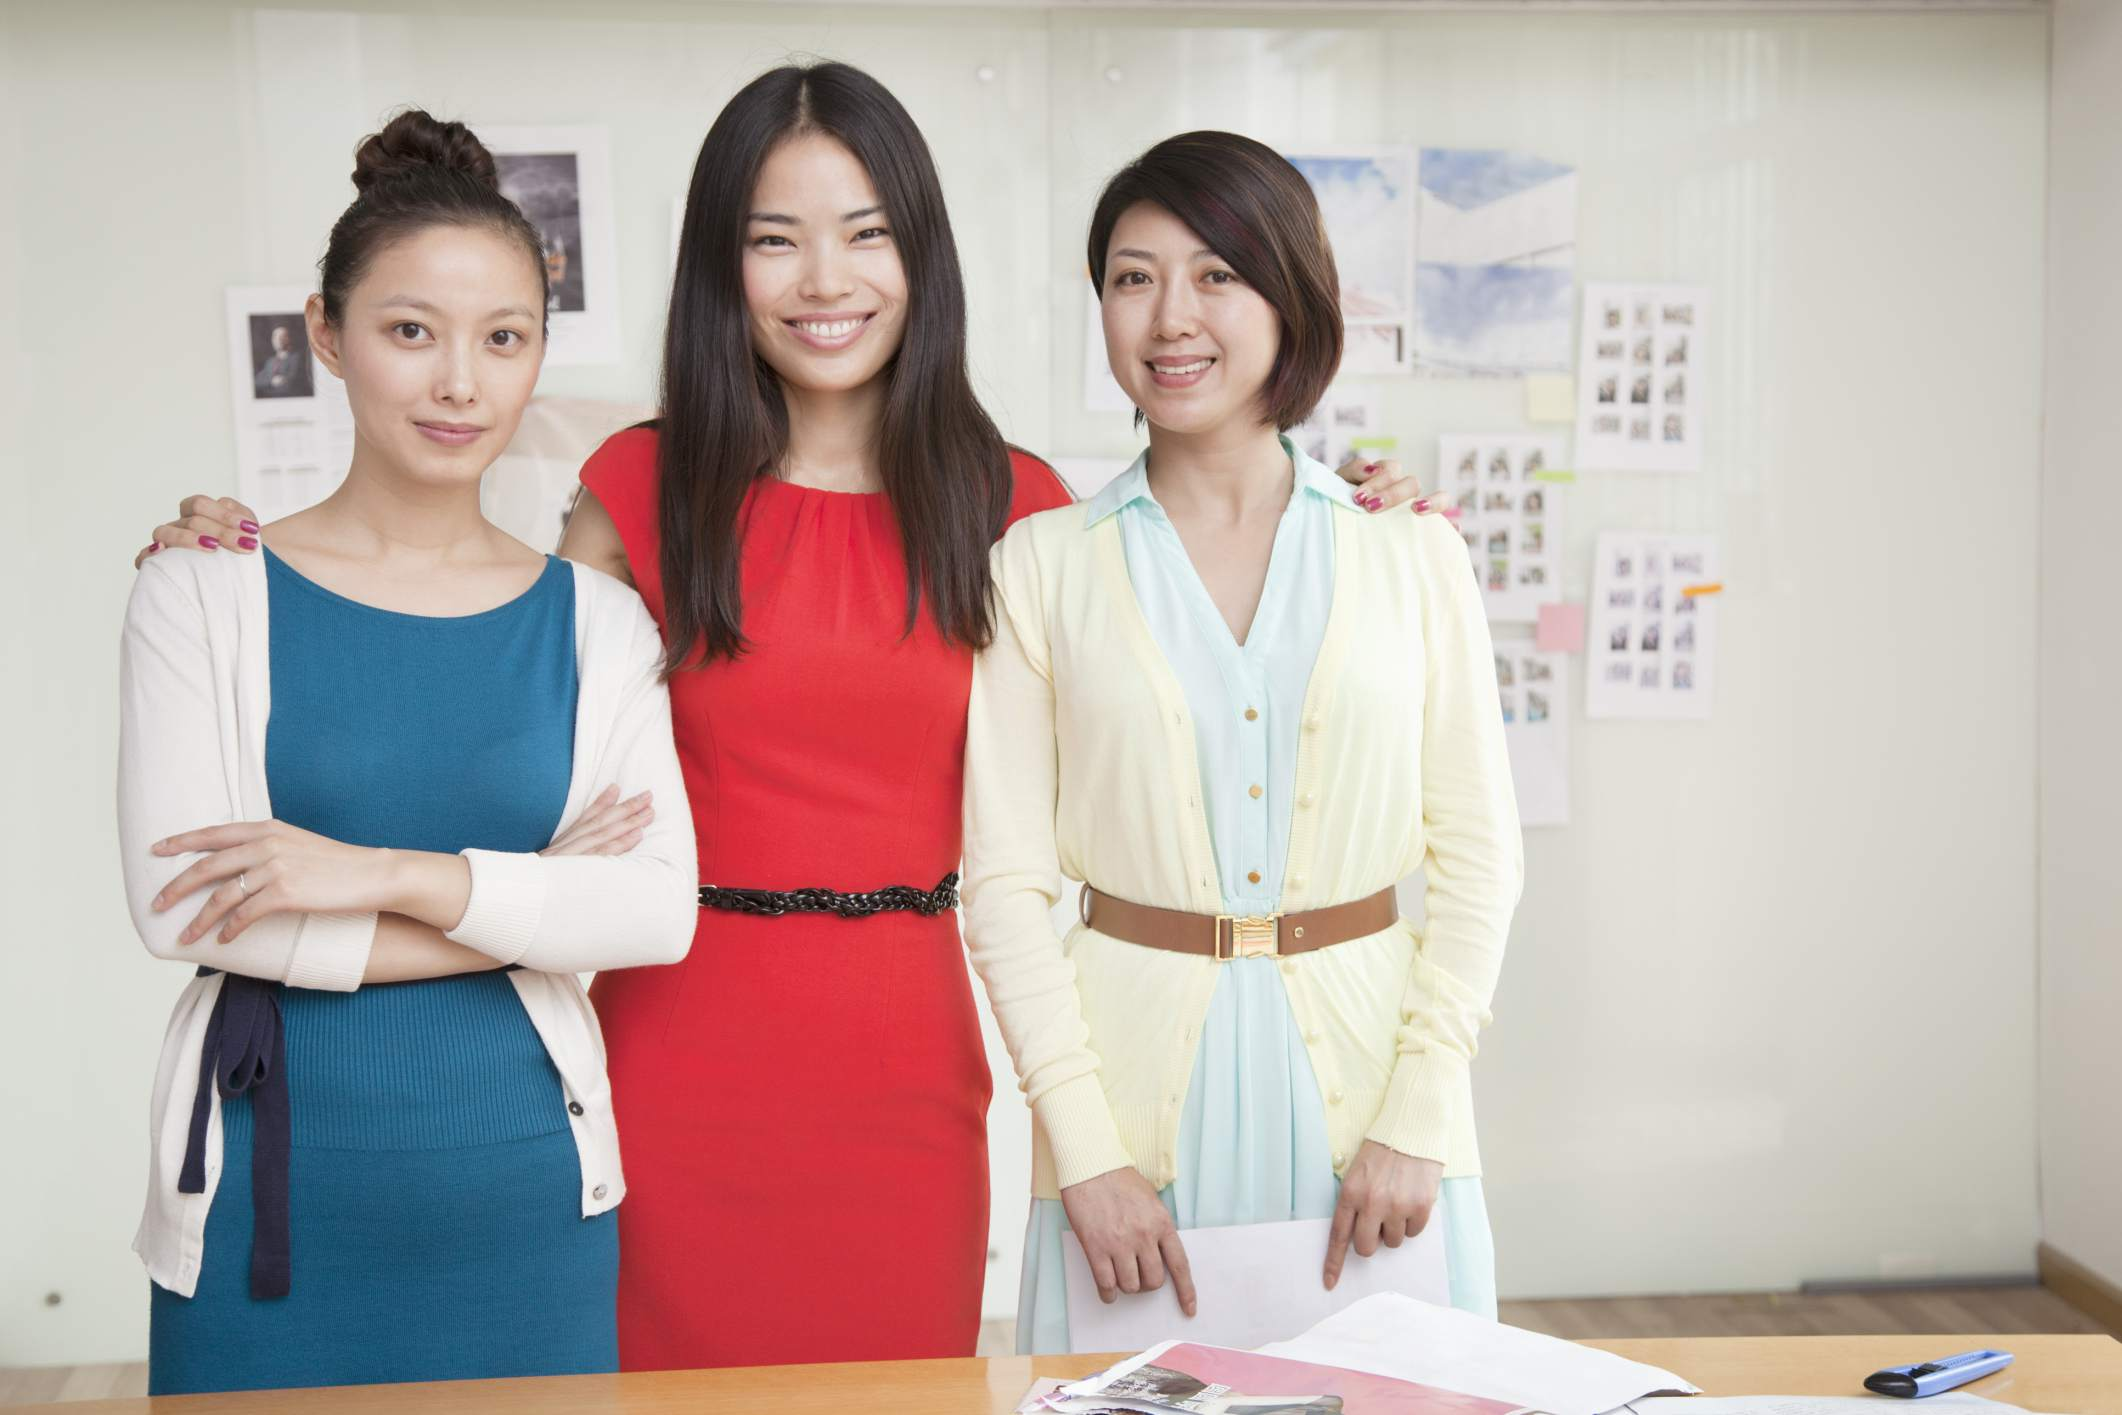 Three women in business casual clothes